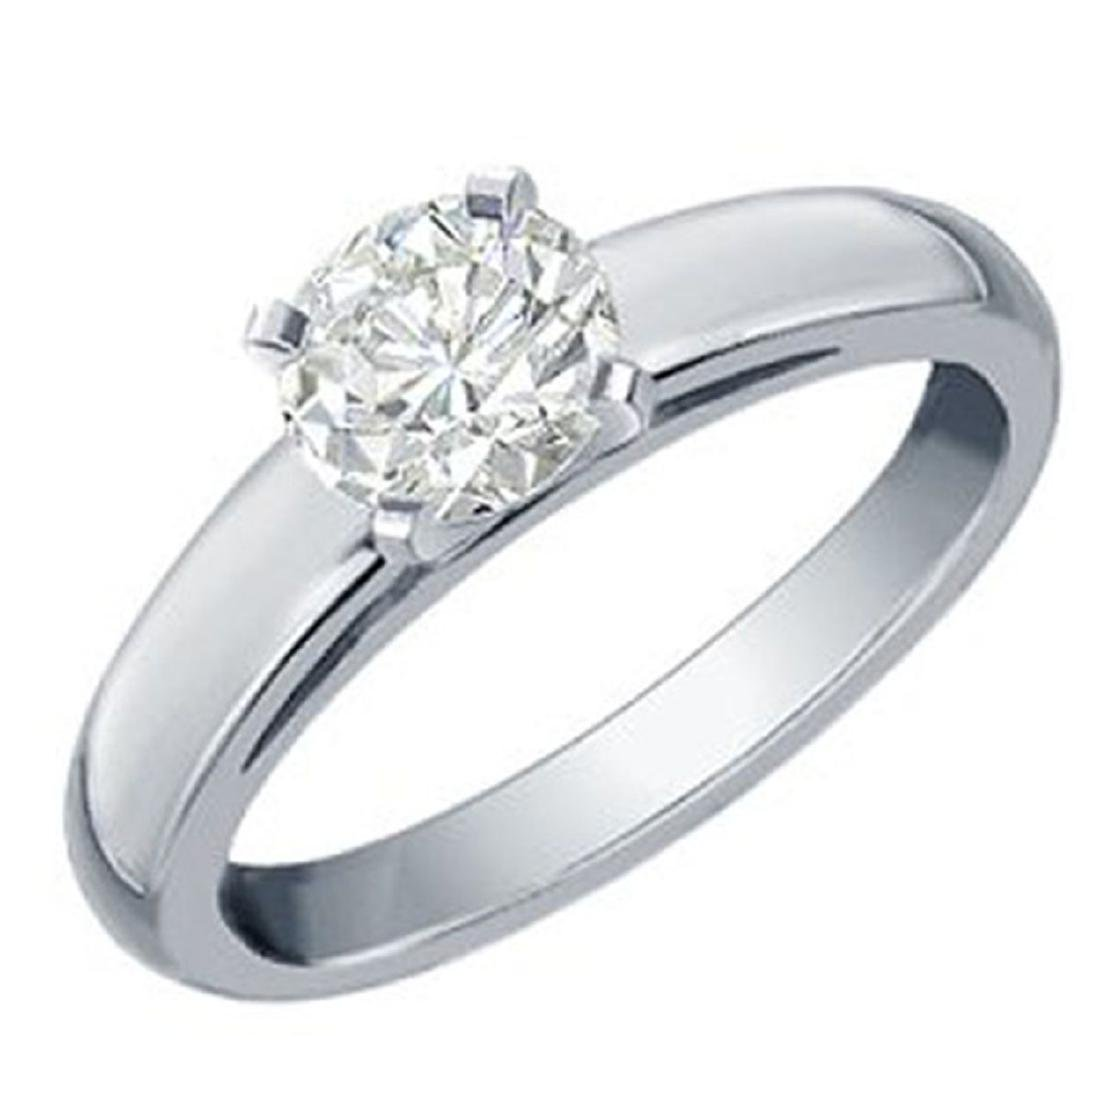 1.0 CTW Certified VS/SI Diamond Solitaire Ring 18K